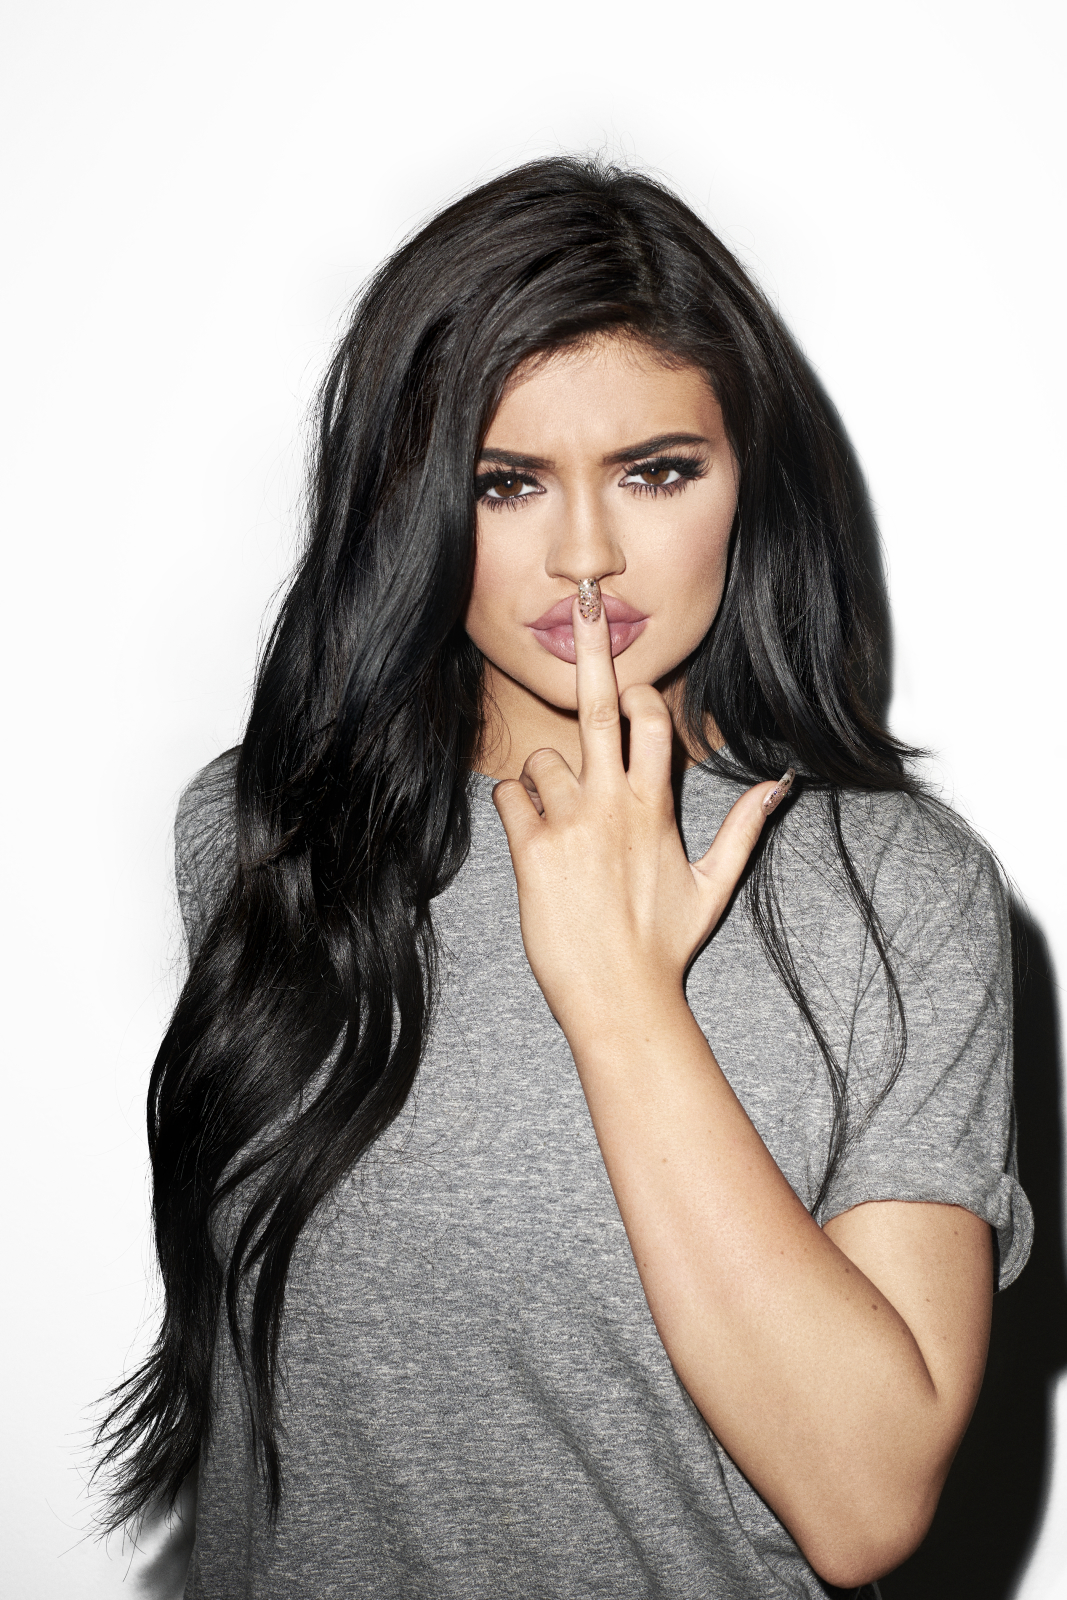 Kylie Jenner Lip Kit Are Colourpop Lipsticks: The 31 Sexiest Kylie Jenner Photos Of All Time